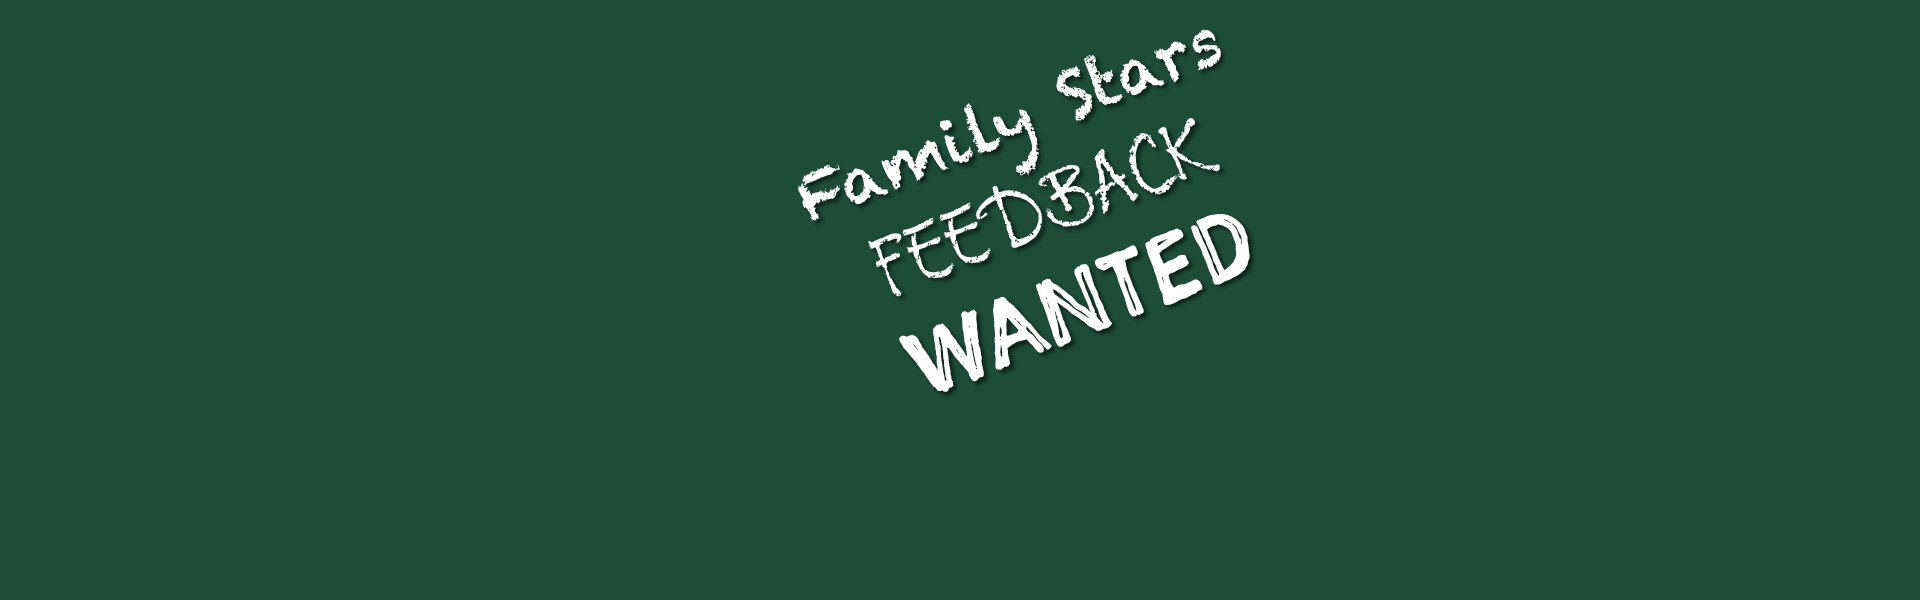 Dark green background with write writing that reads Family Stars feedback wanted